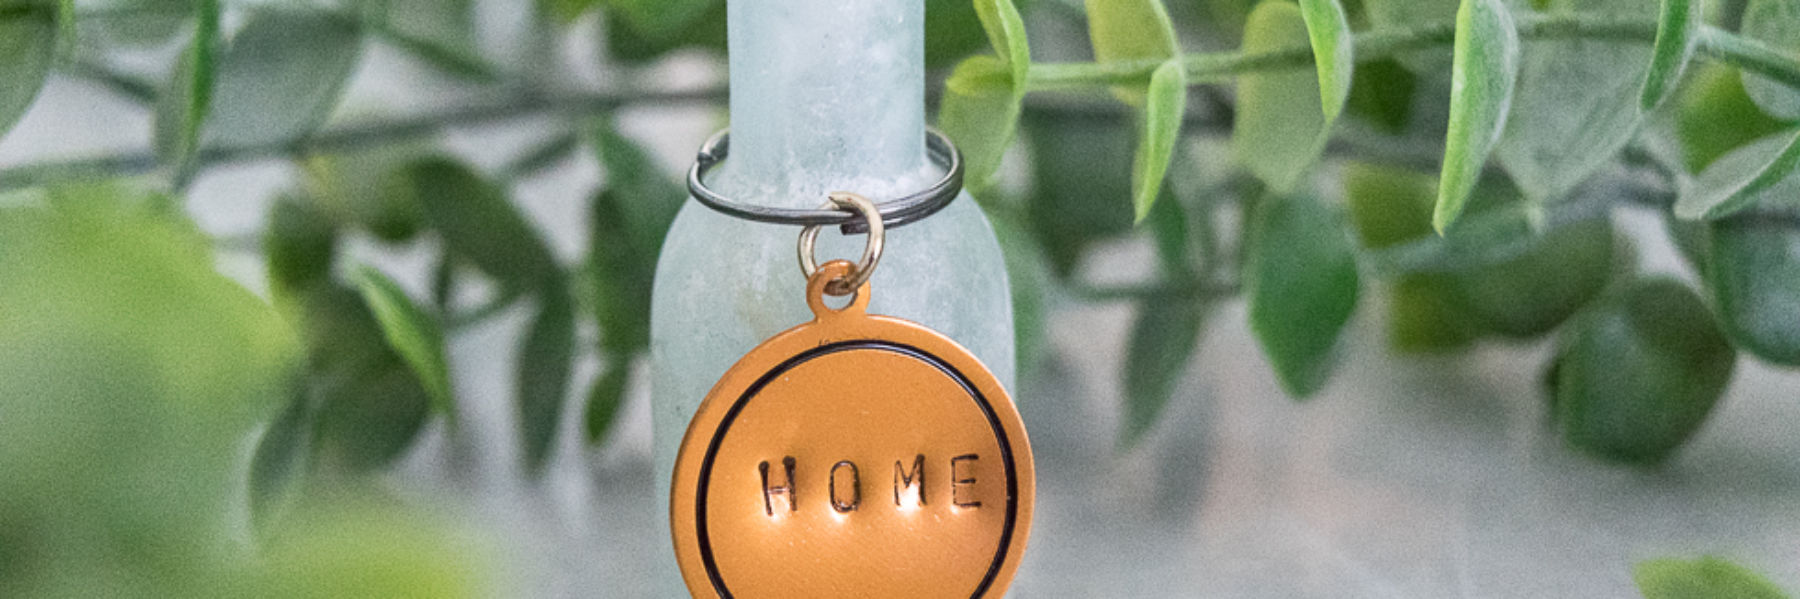 copper-key-chain-diy-craft